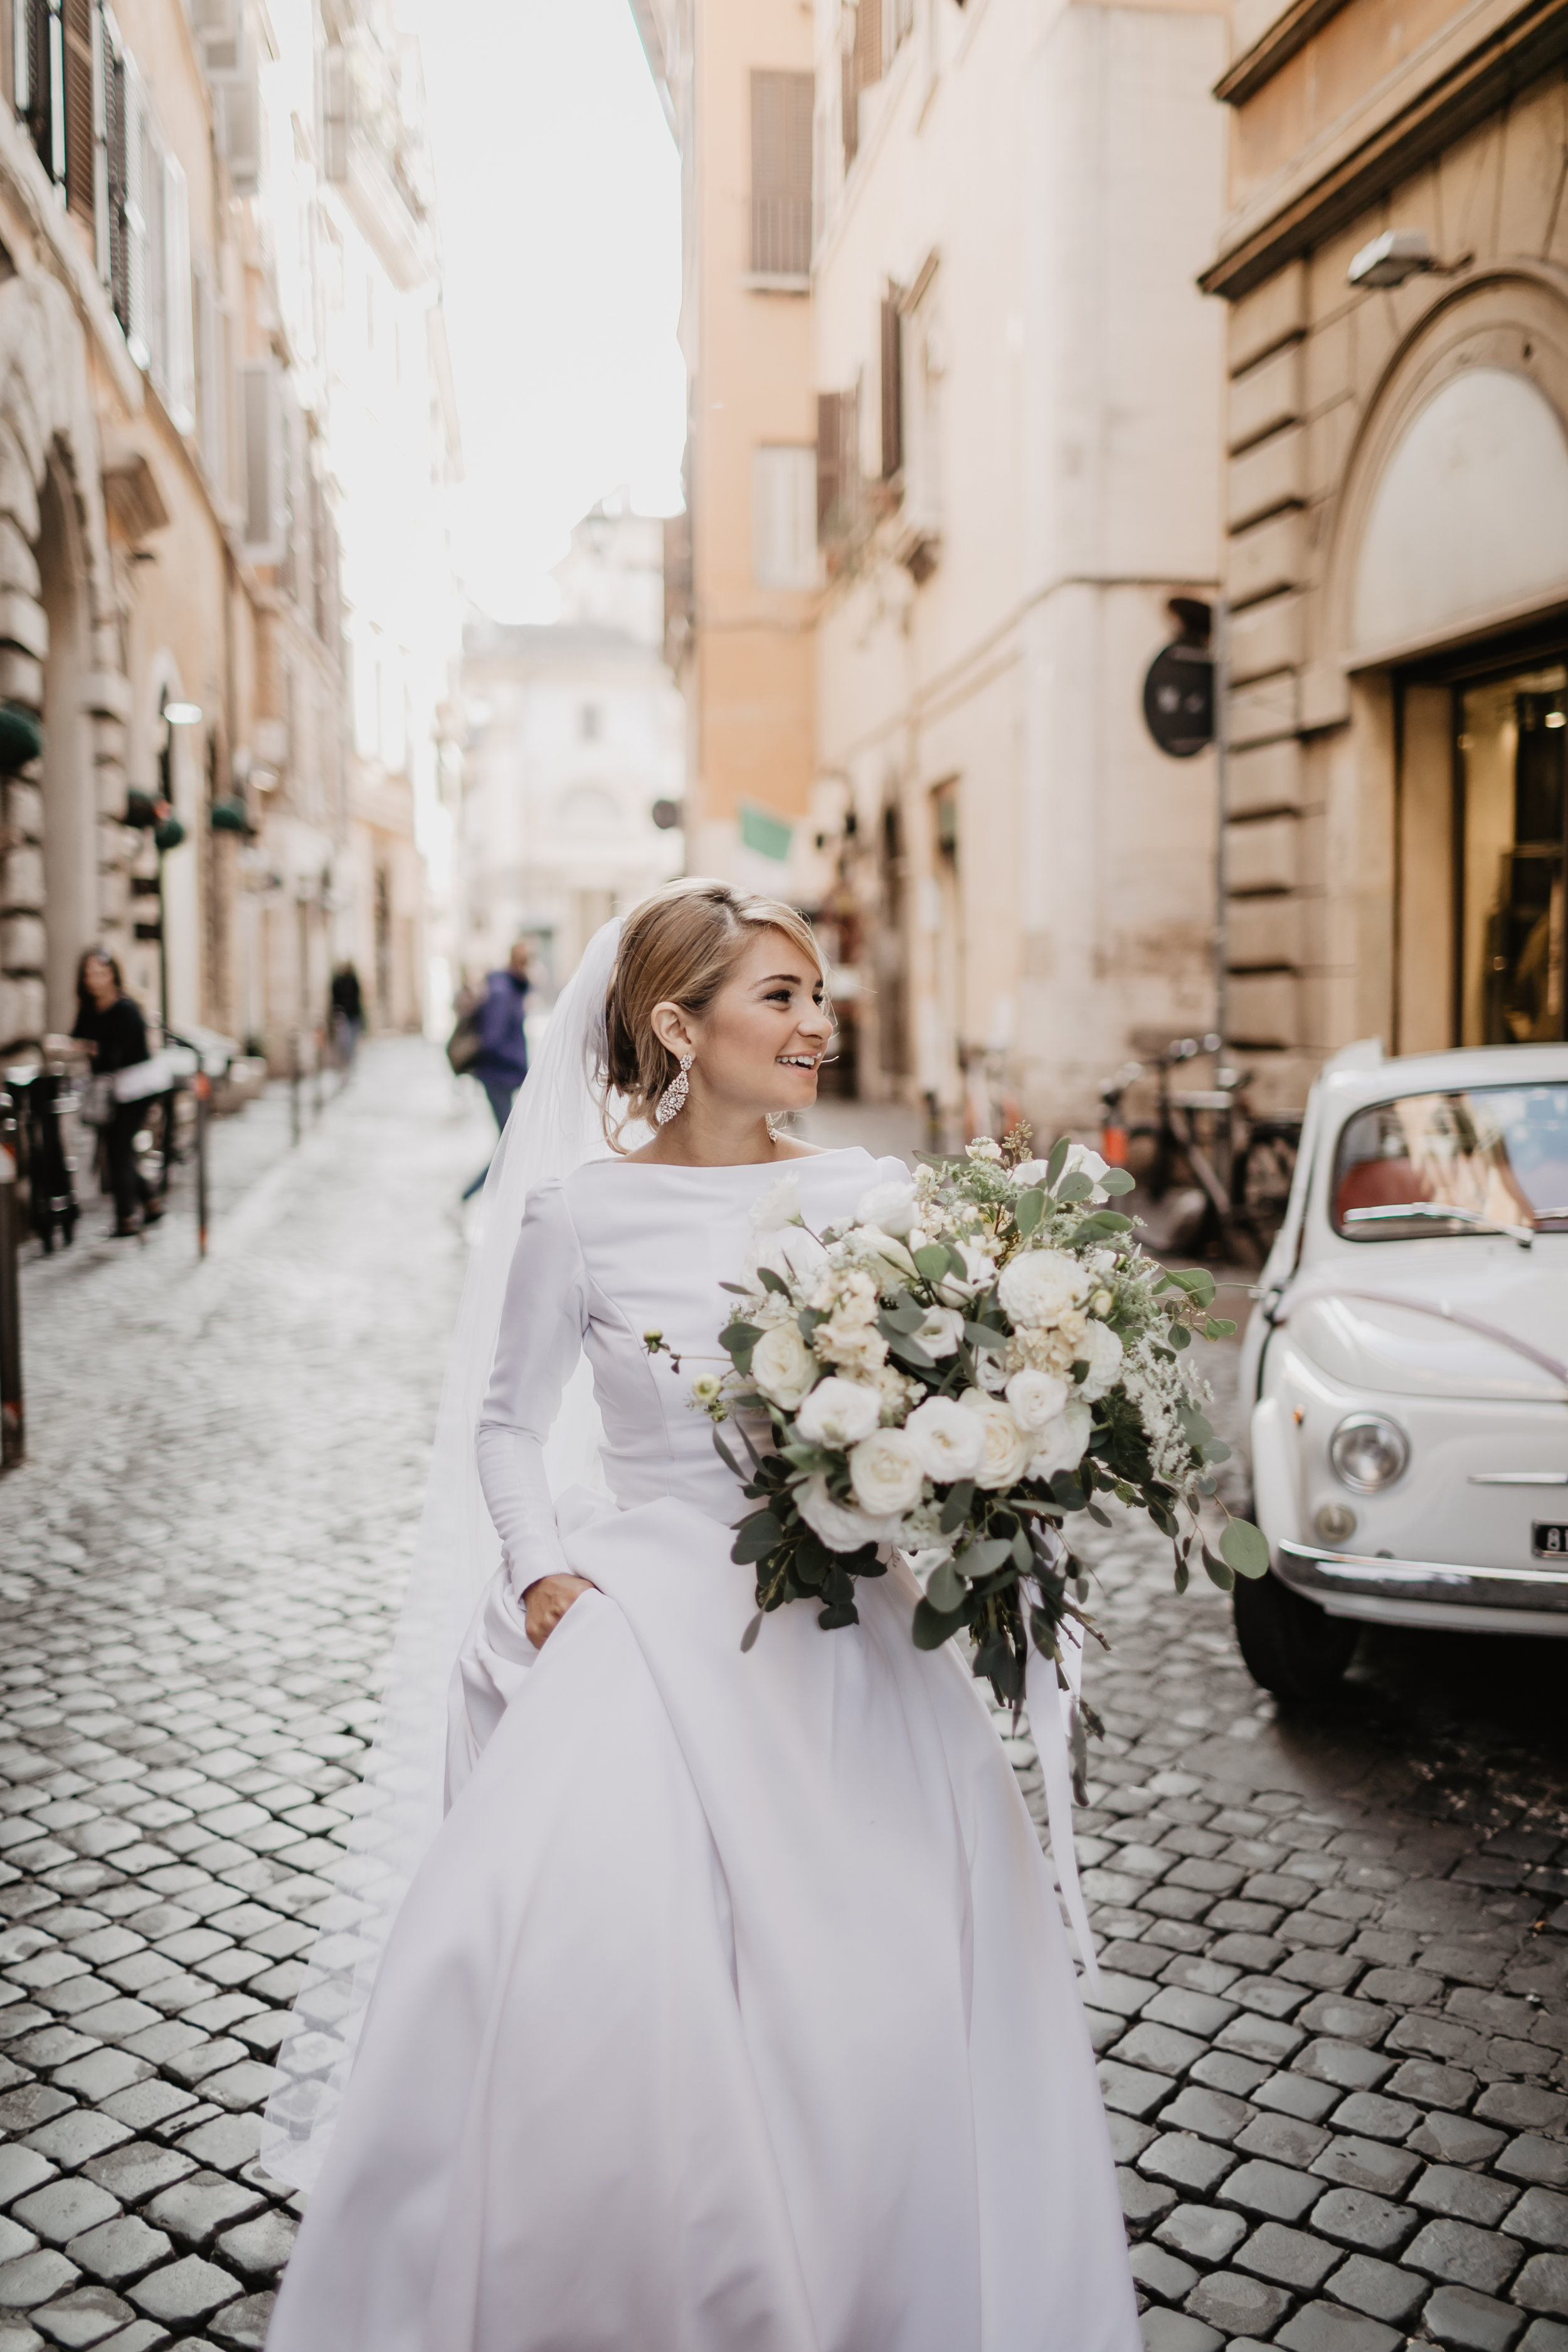 Photography: Aberrazioni Cromatiche Studio, seen in    Fabiola + Cole | Vatican City Basilica Wedding